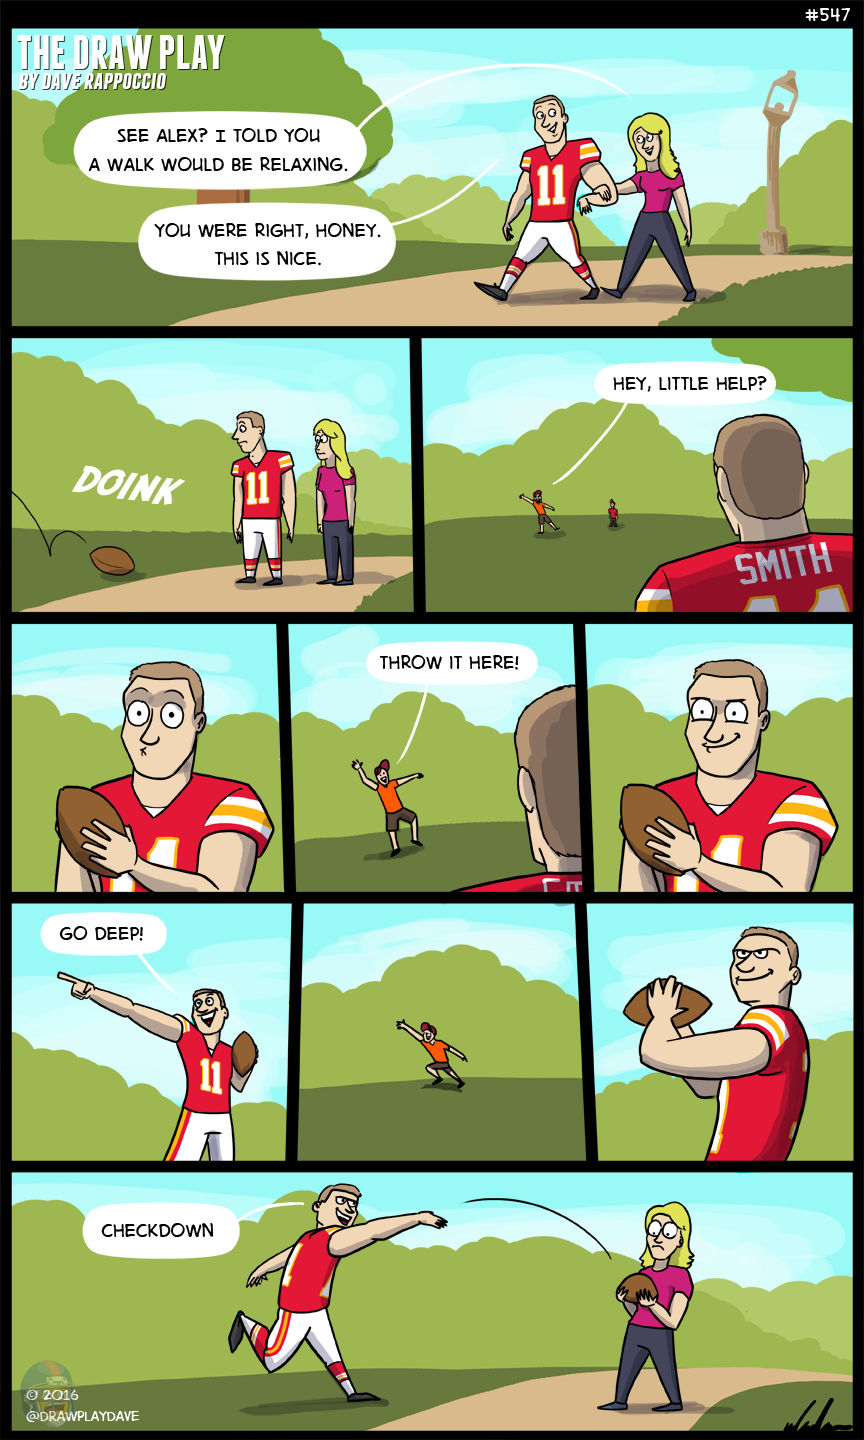 Alex Smith never goes deep. Into the playoffs.